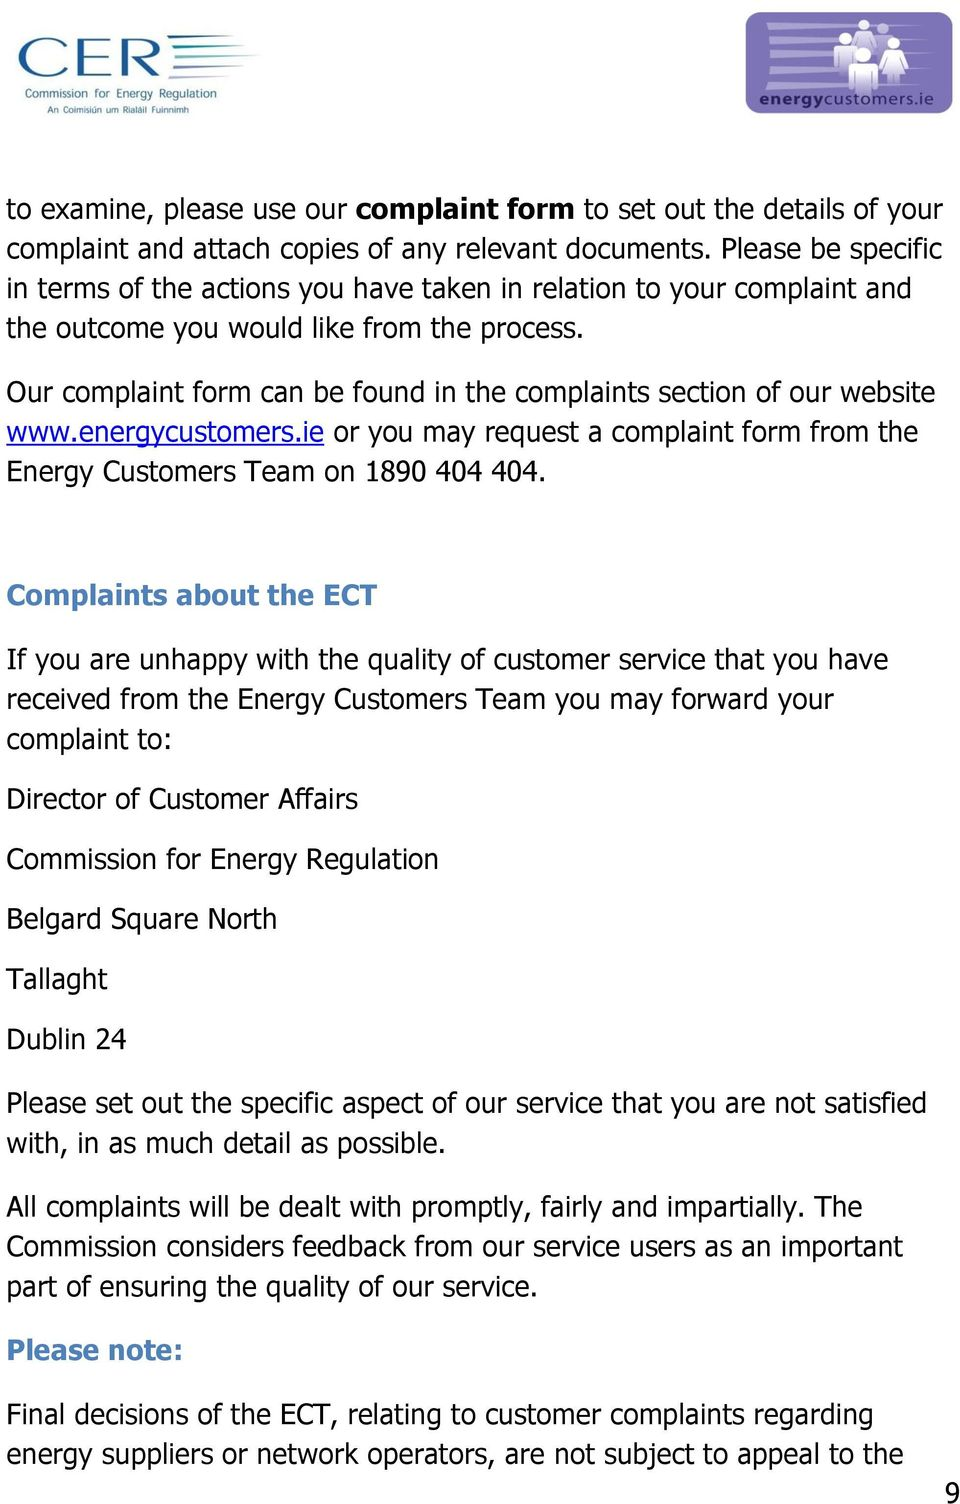 Our complaint form can be found in the complaints section of our website www.energycustomers.ie or you may request a complaint form from the Energy Customers Team on 1890 404 404.